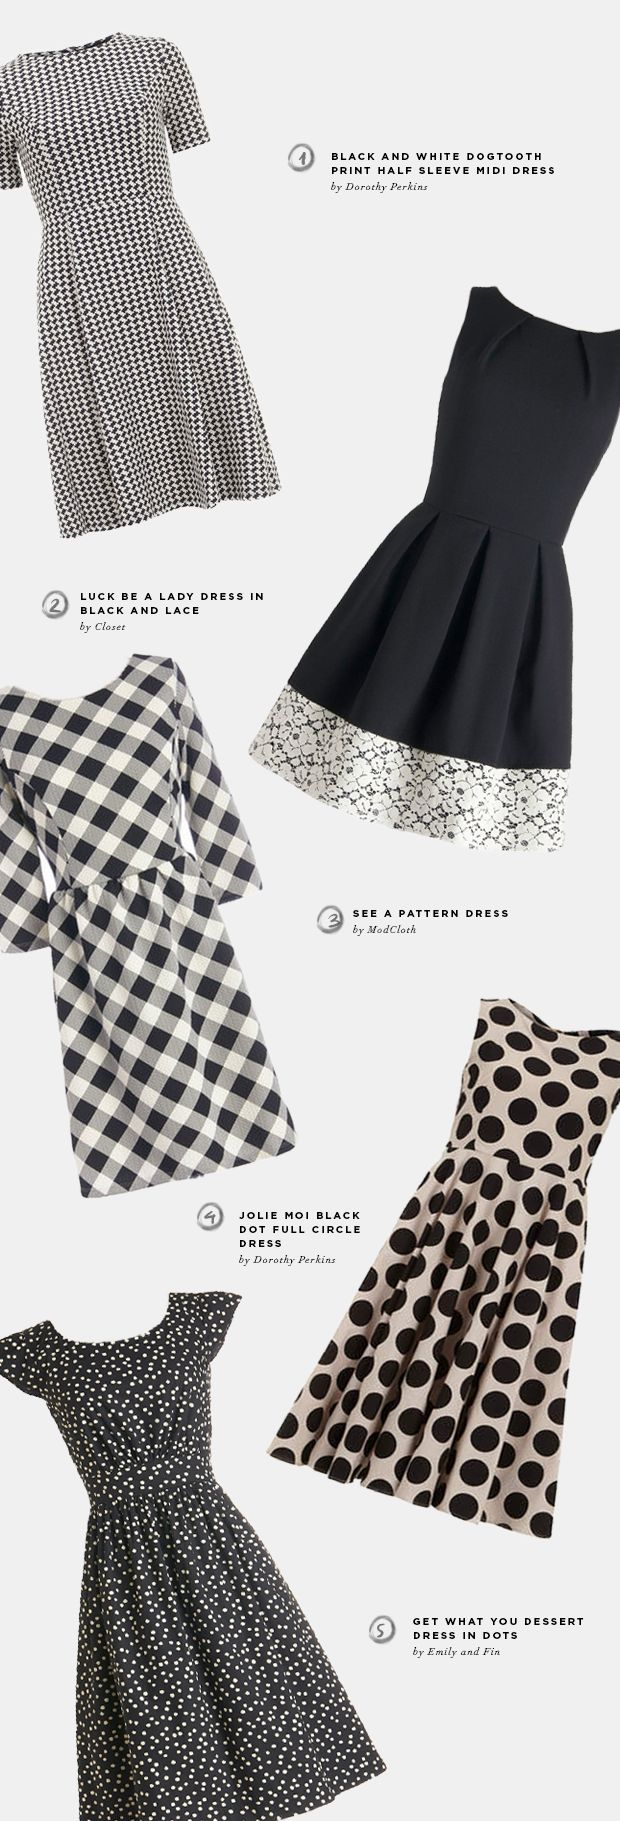 The best #retro fit-and-flare #dresses http://verilymag.com/fall-2014-style-versatile-retro-a-line-dresses/ #style